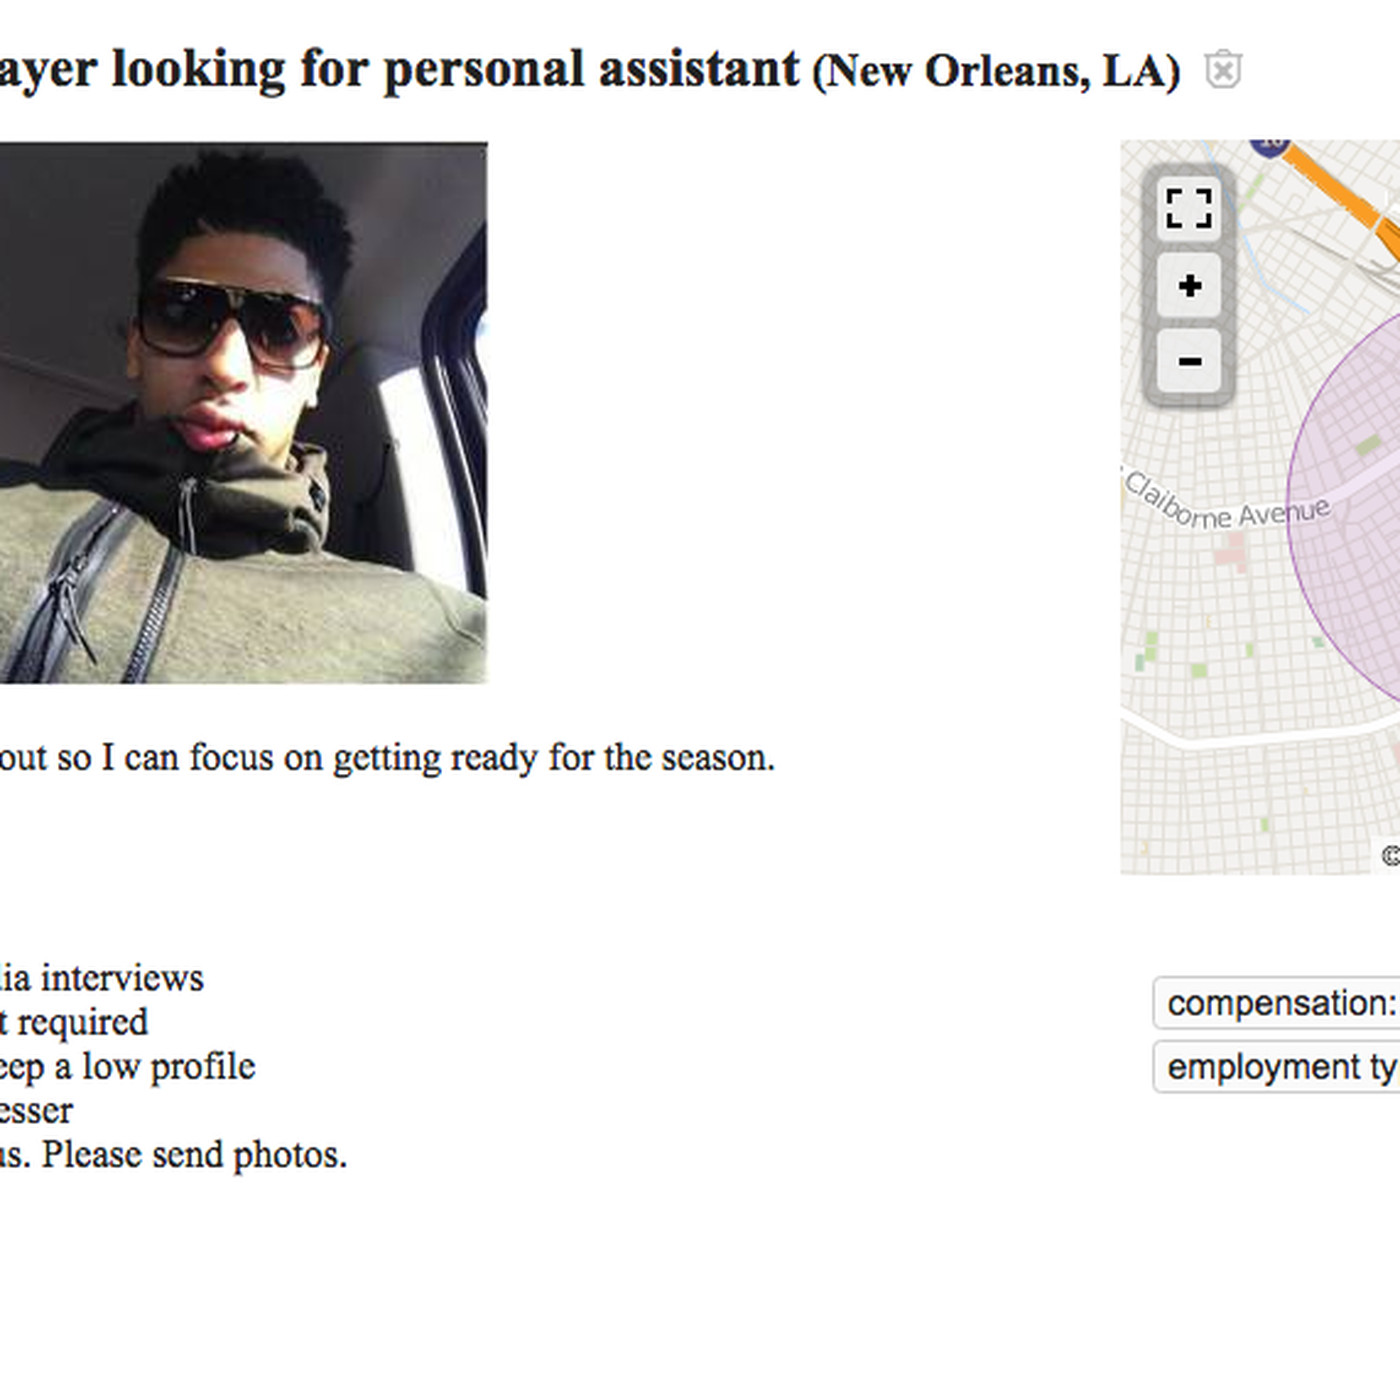 new orleans personals craigslist